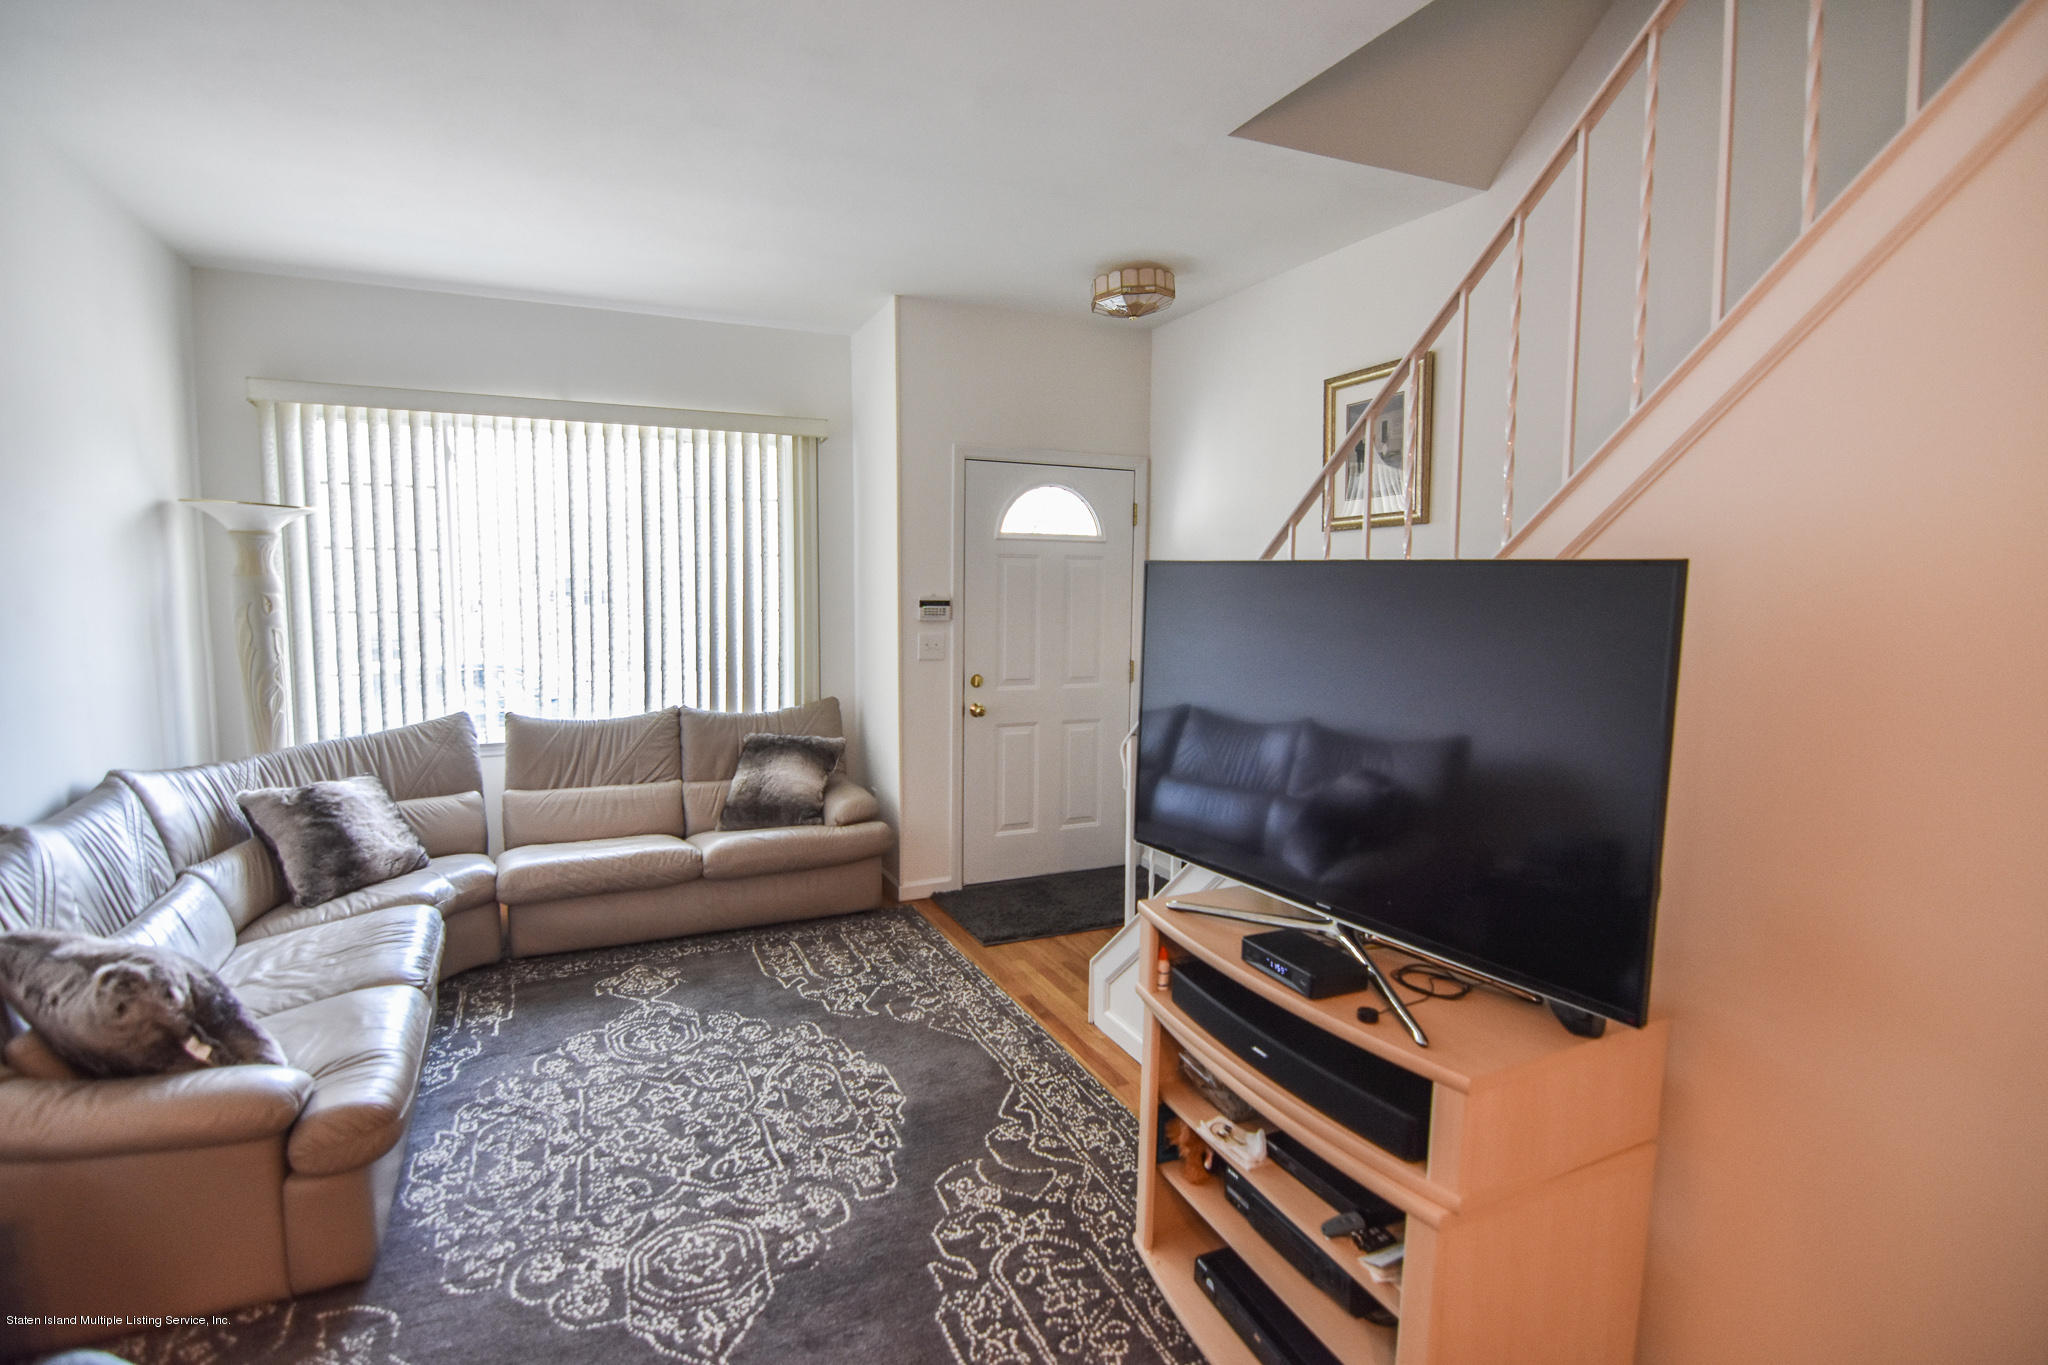 Single Family - Semi-Attached 762 Bloomingdale Road  Staten Island, NY 10309, MLS-1125791-8